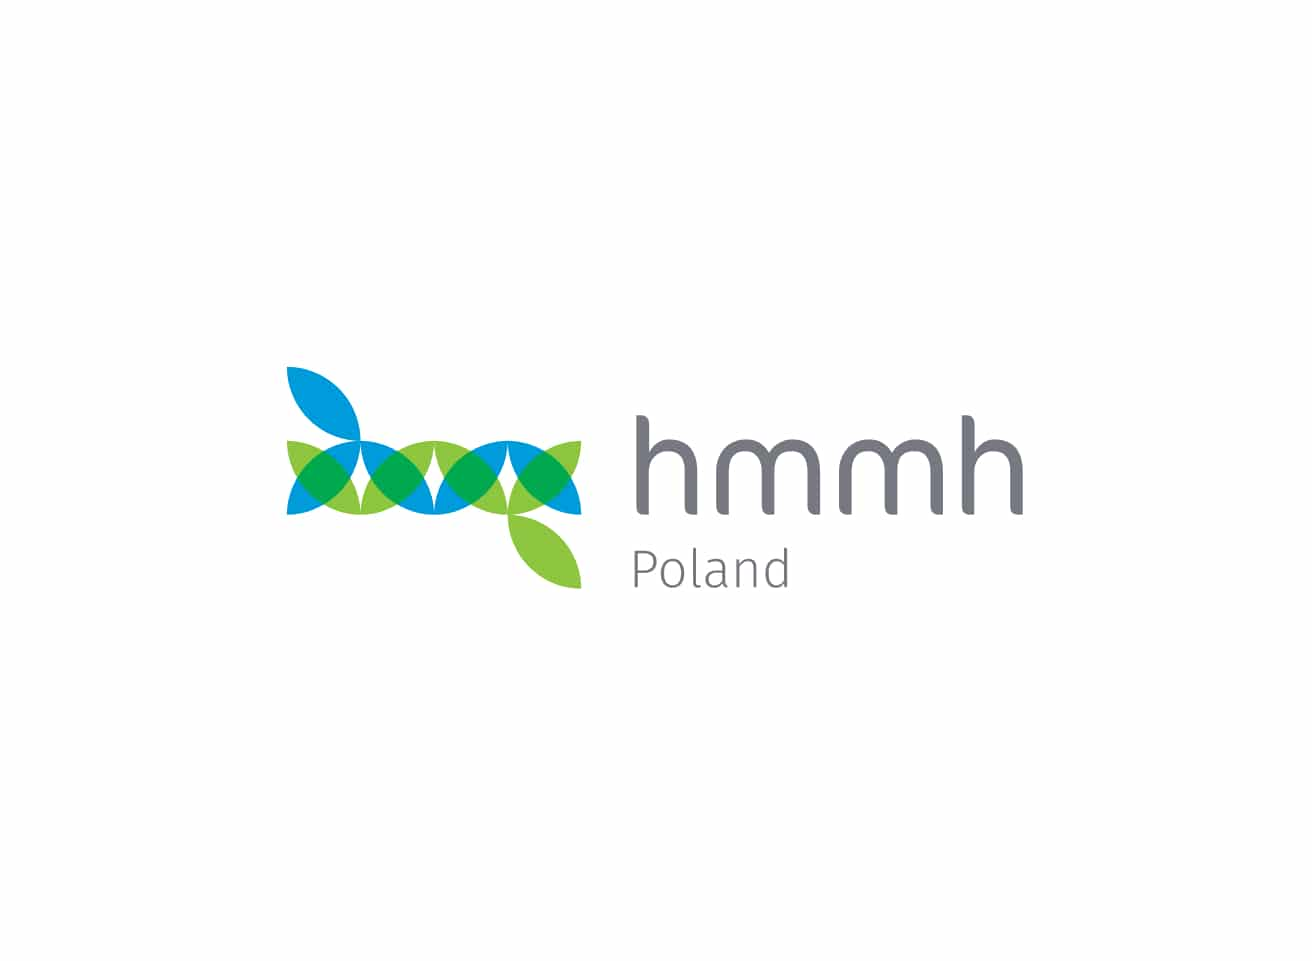 LIKE.agency joins Group One & hmmh and changes its branding to hmmh Poland